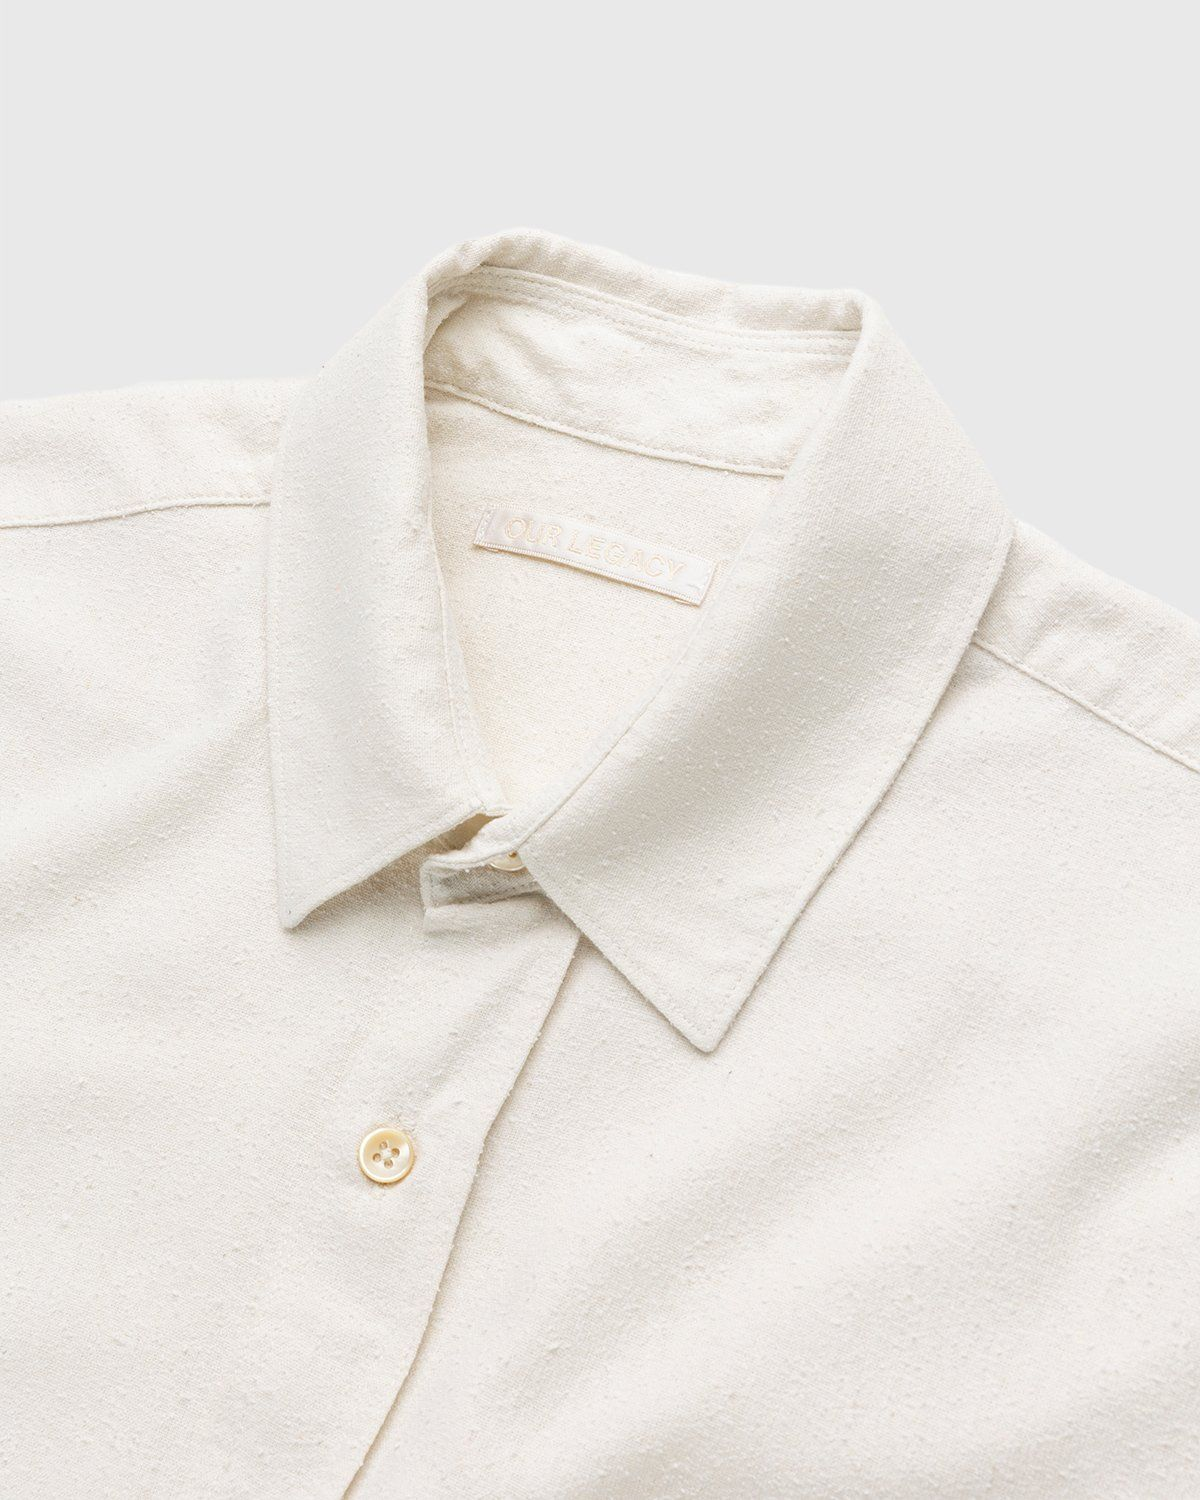 Our Legacy – Classic Shirt White Silk - Image 3